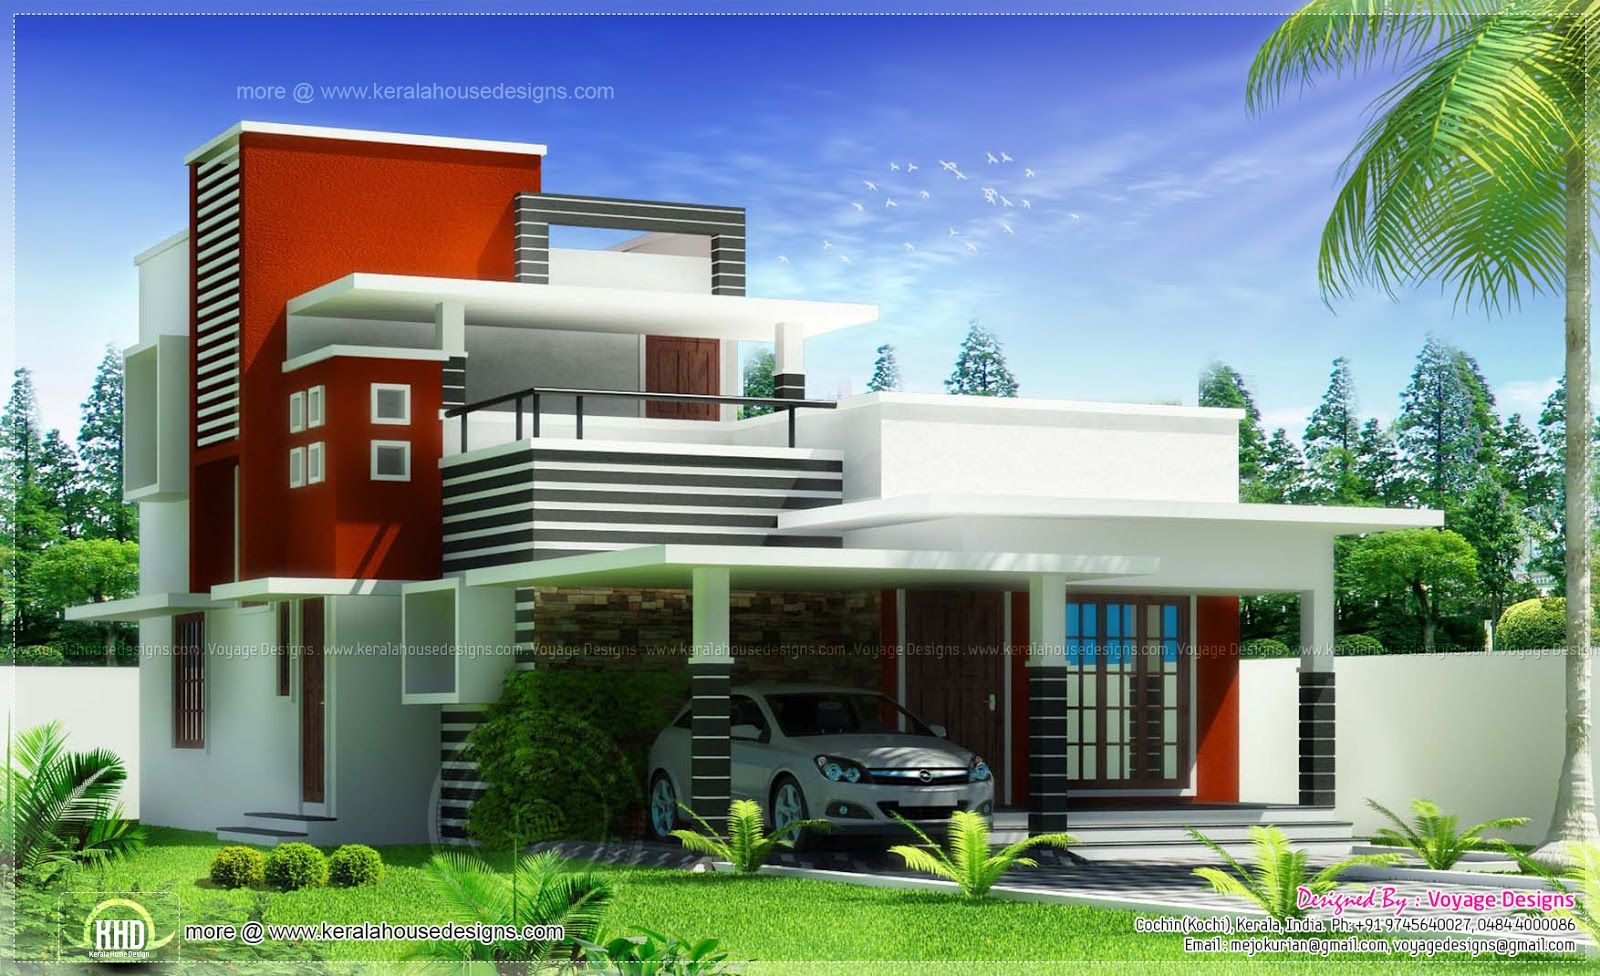 Kerala house designs architecture pinterest kerala for Best modern villa designs